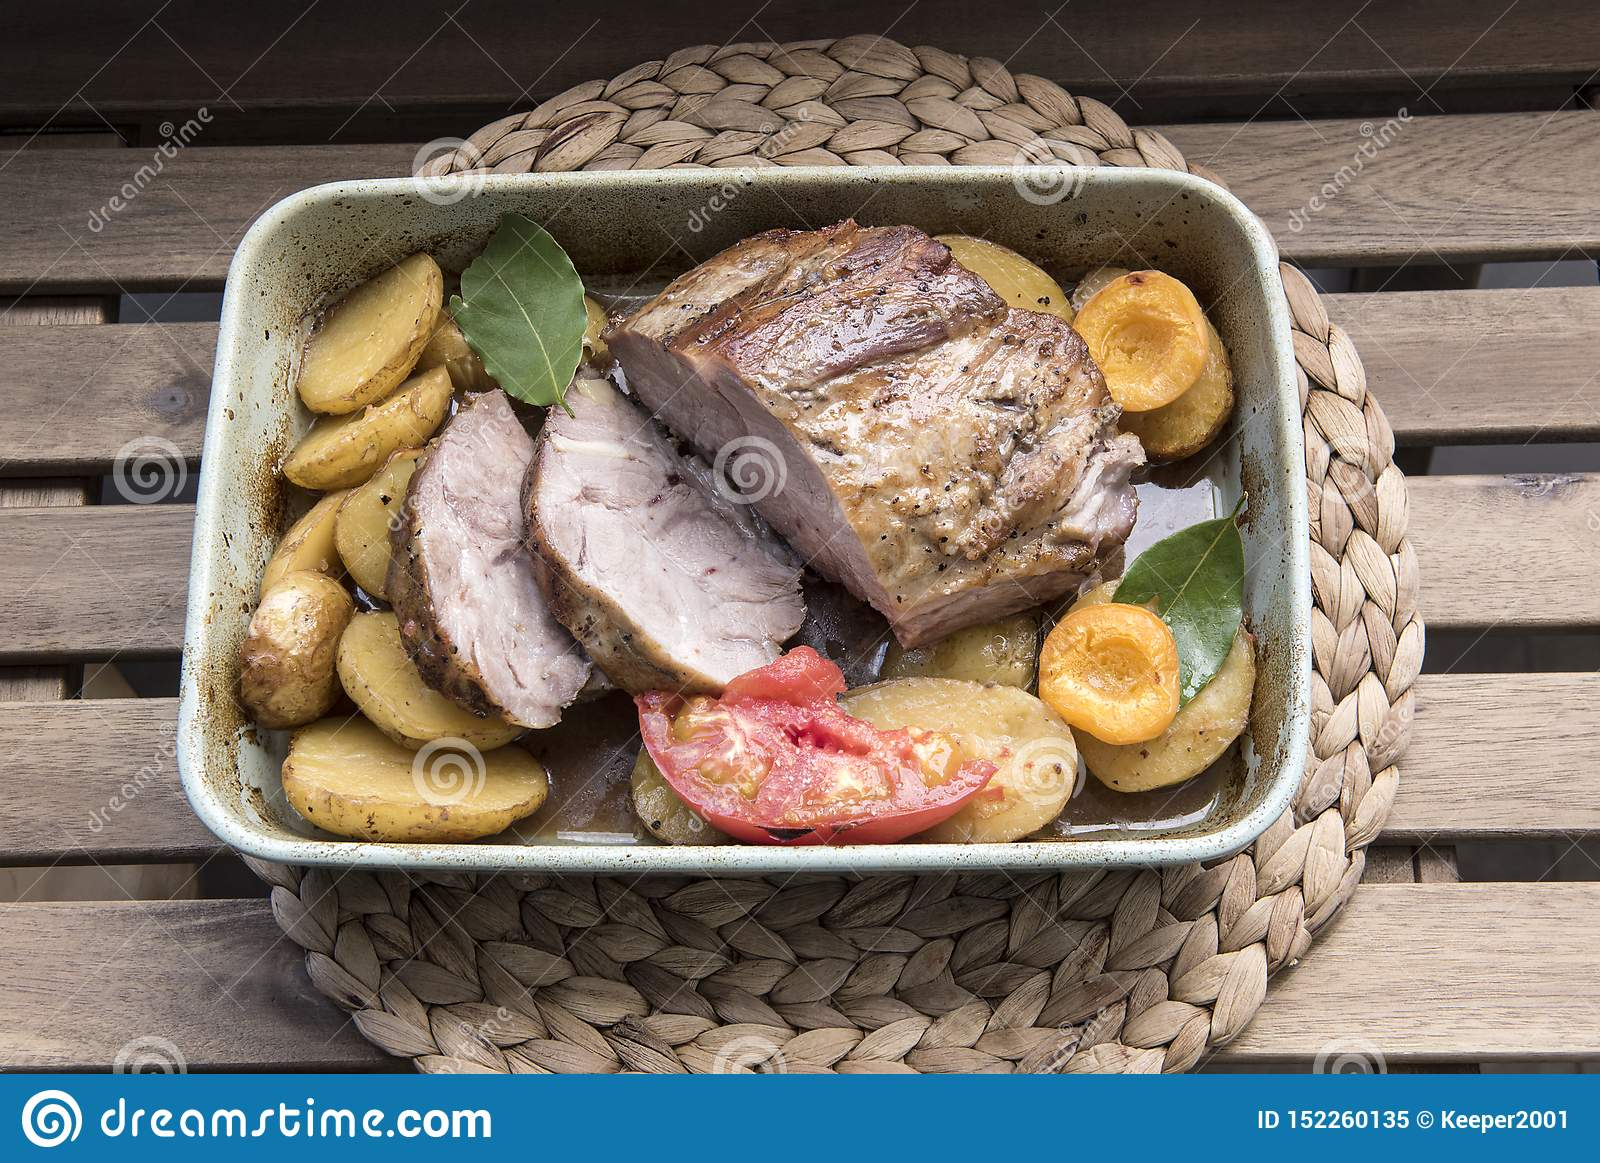 Cooked meat with vegetables and fruits on a platter